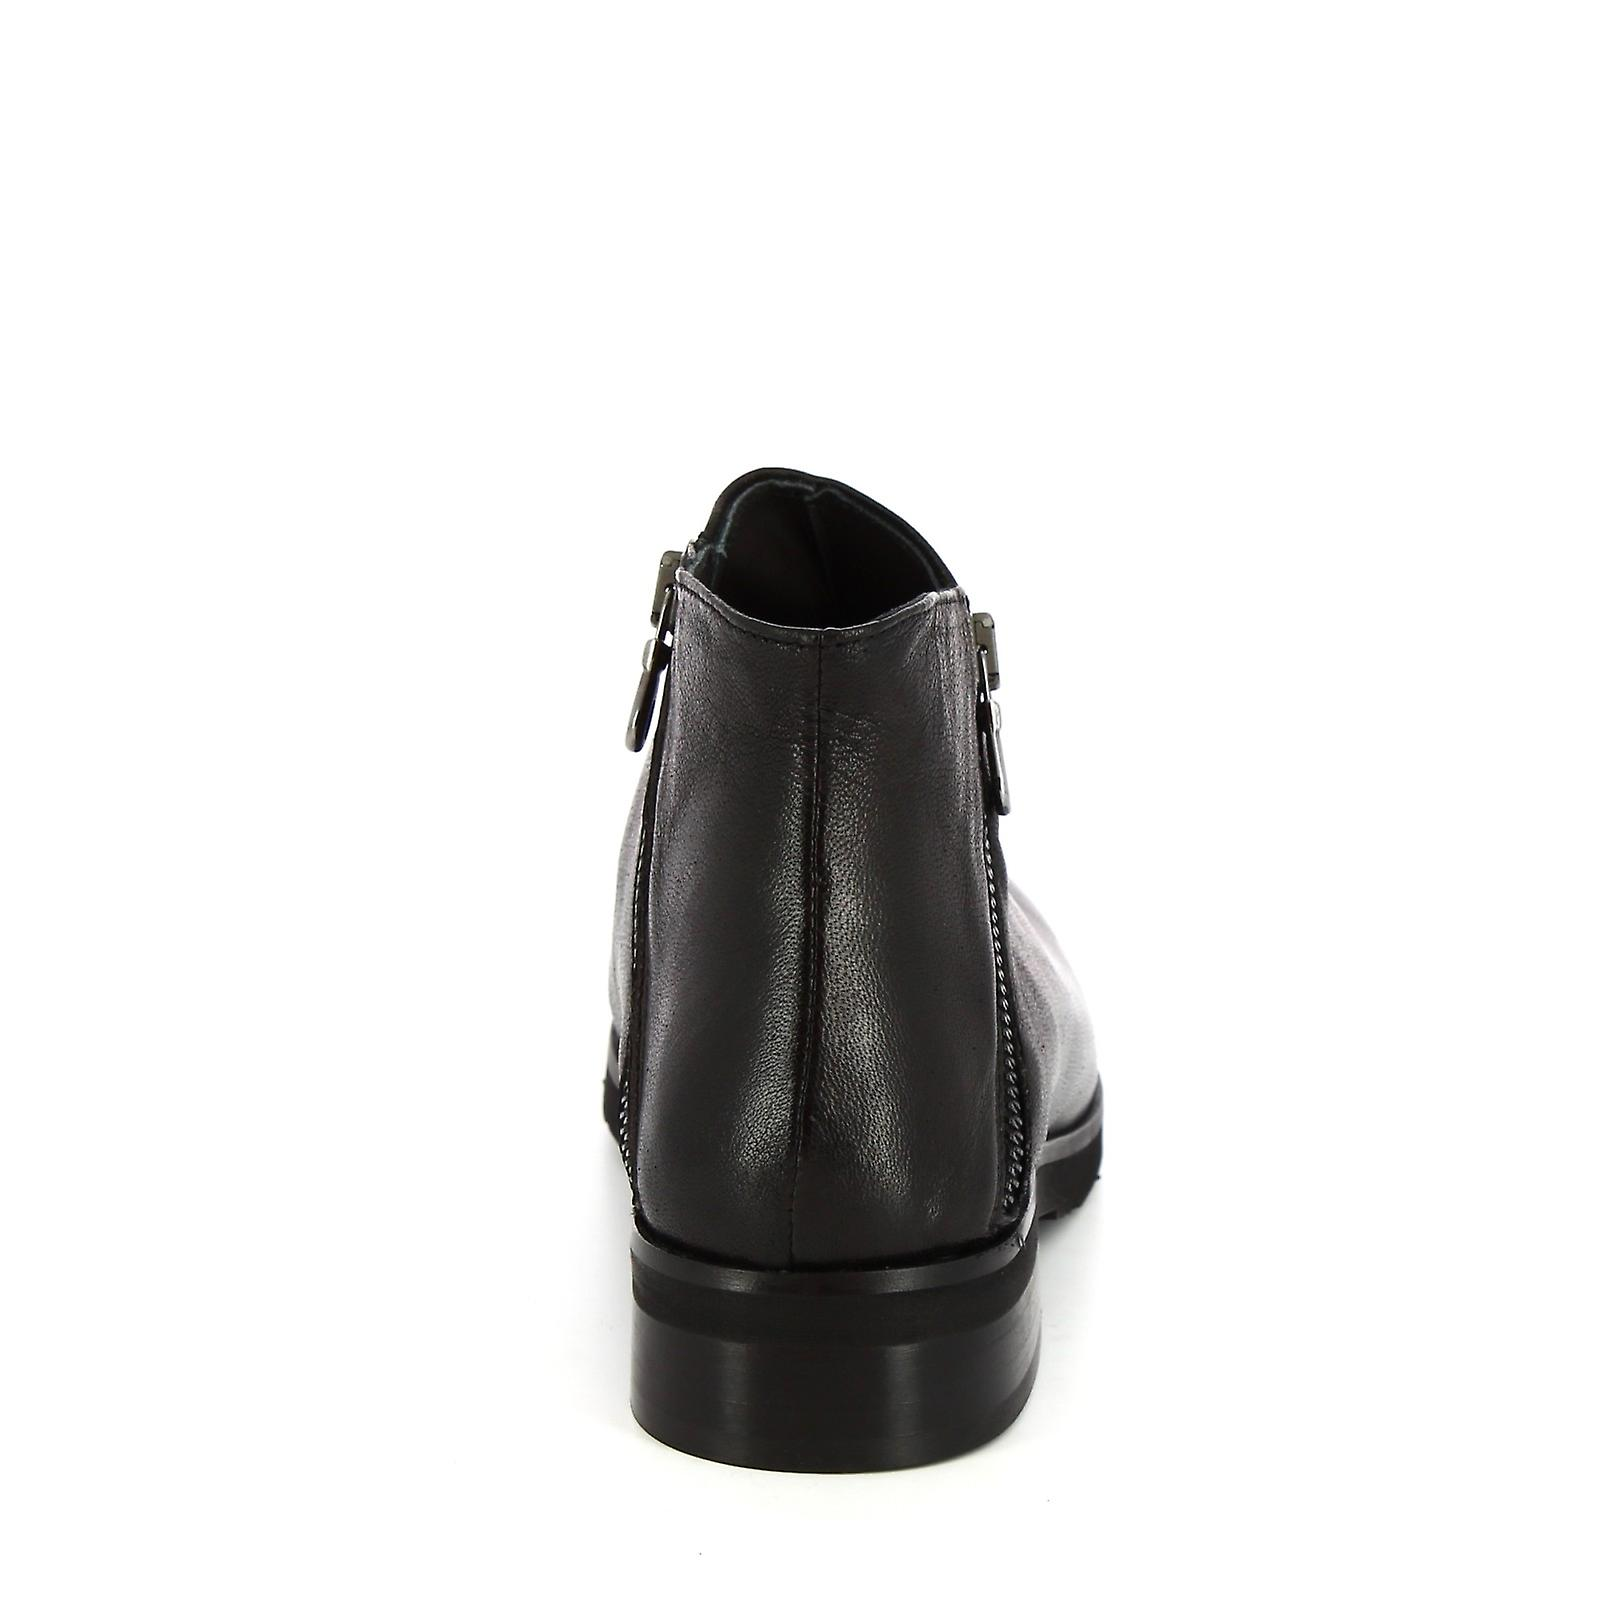 Leonardo Shoes Women's handmade ankle boots in black calf leather two zips